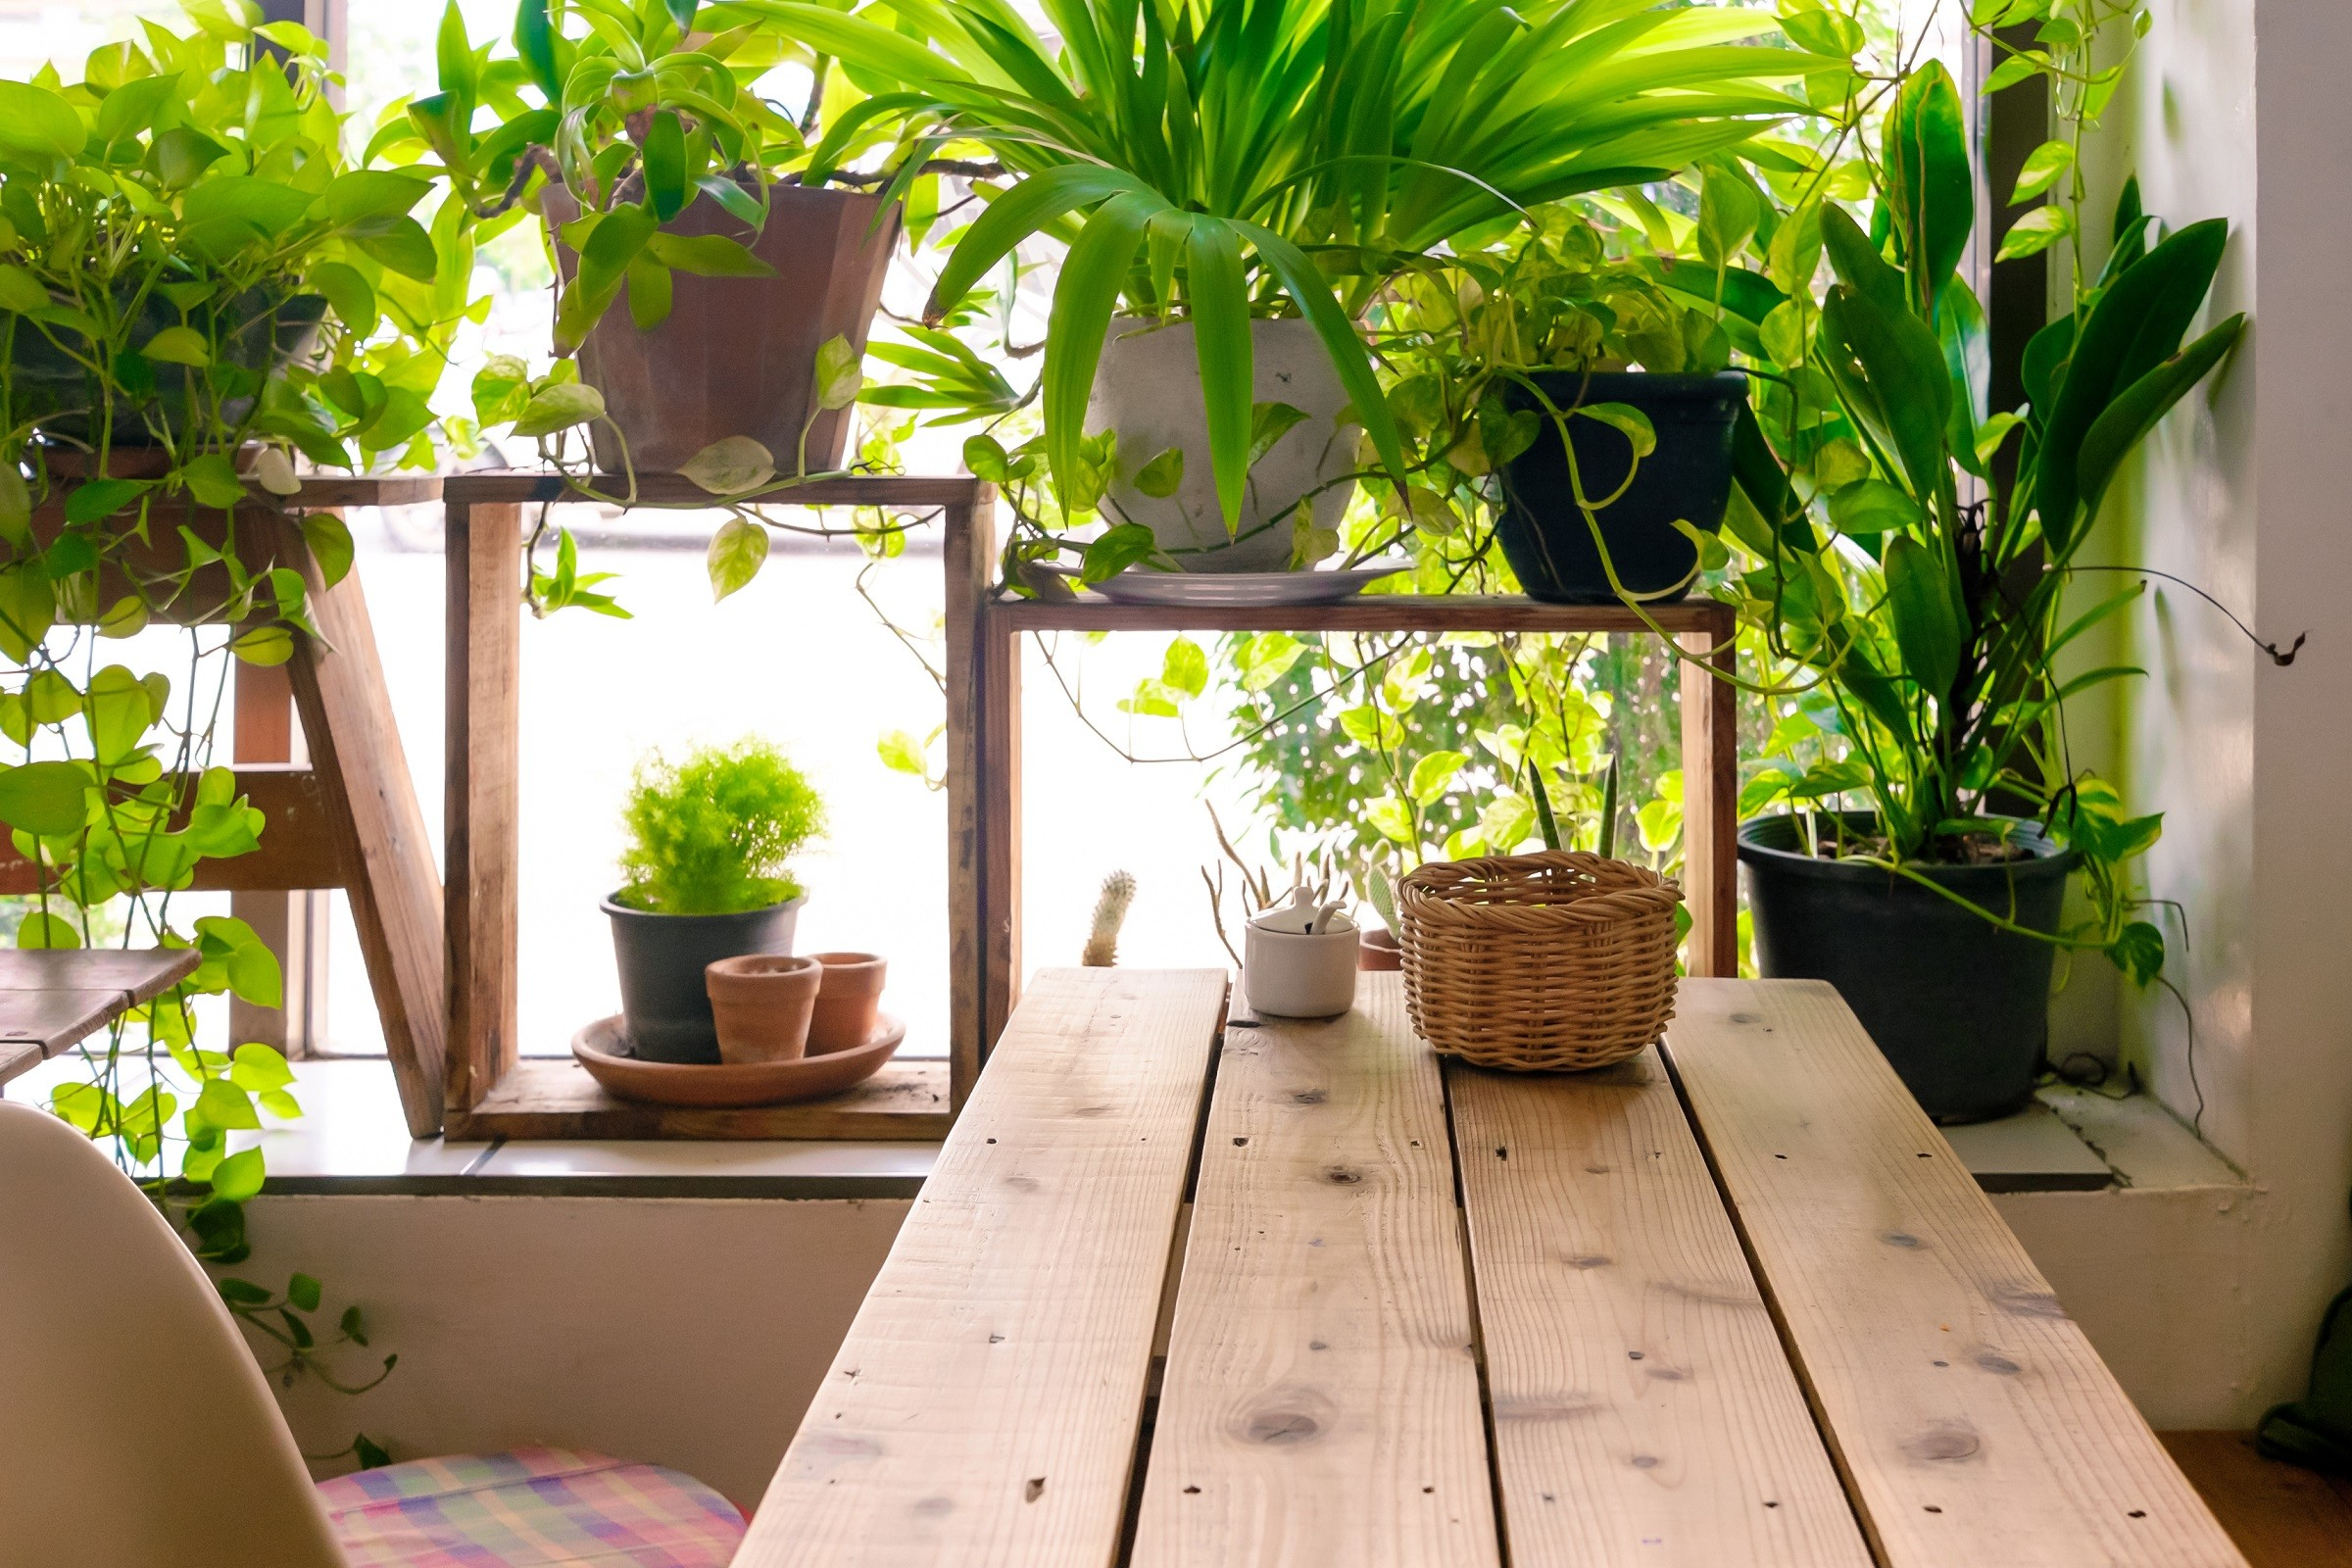 Table side the window and plants pot